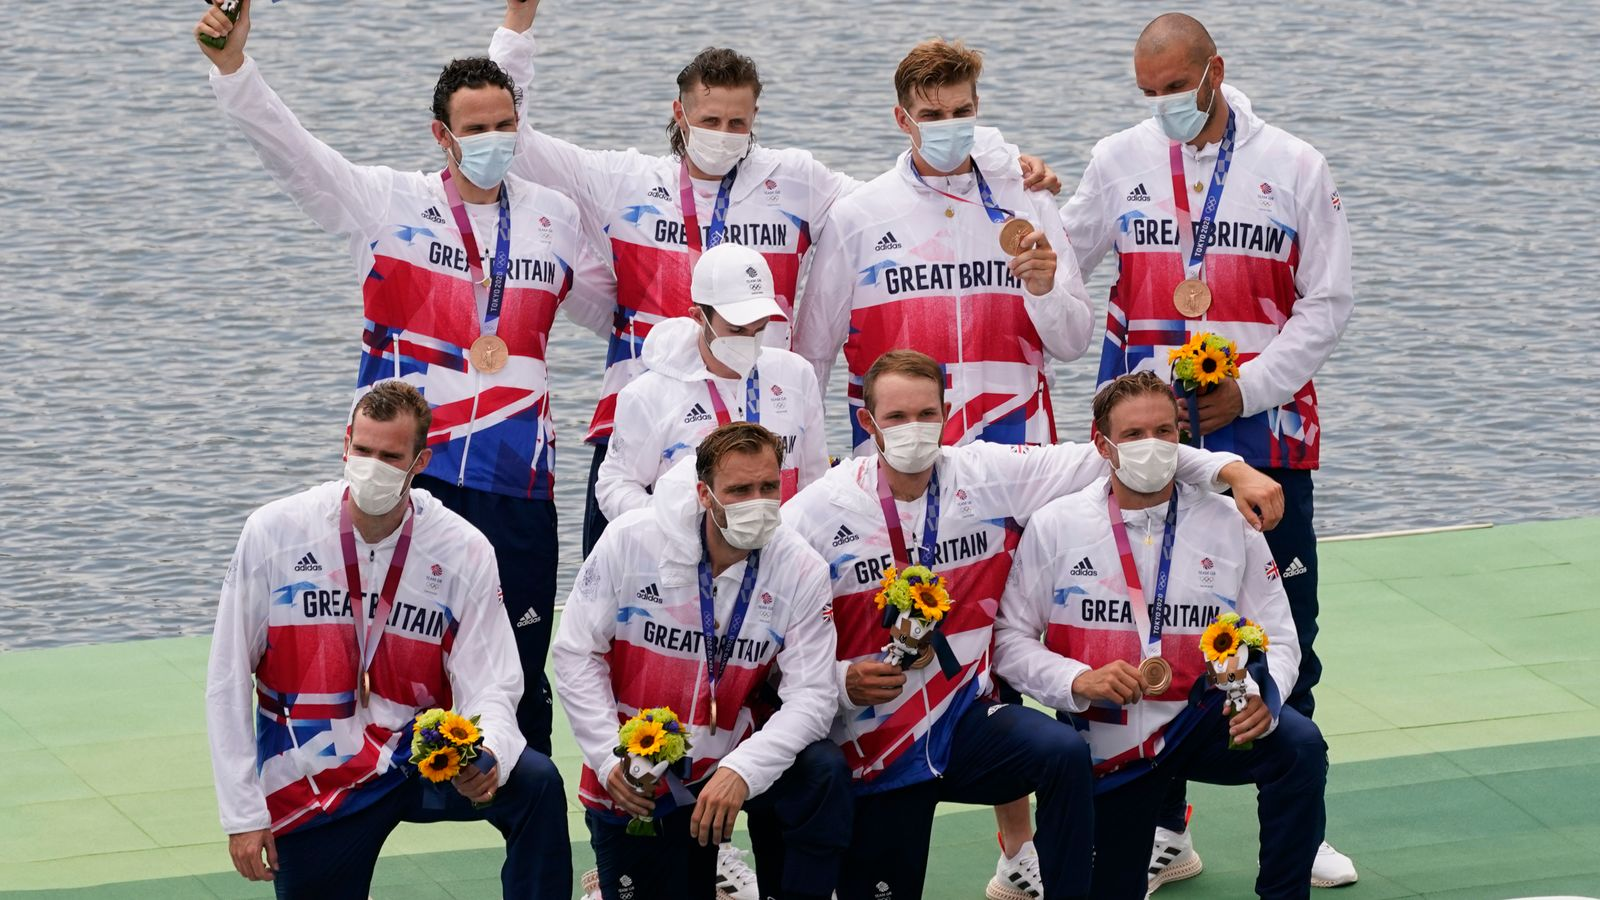 Tokyo 2020 Olympics: Great Britain win bronze in men's eight to claim second rowing medal